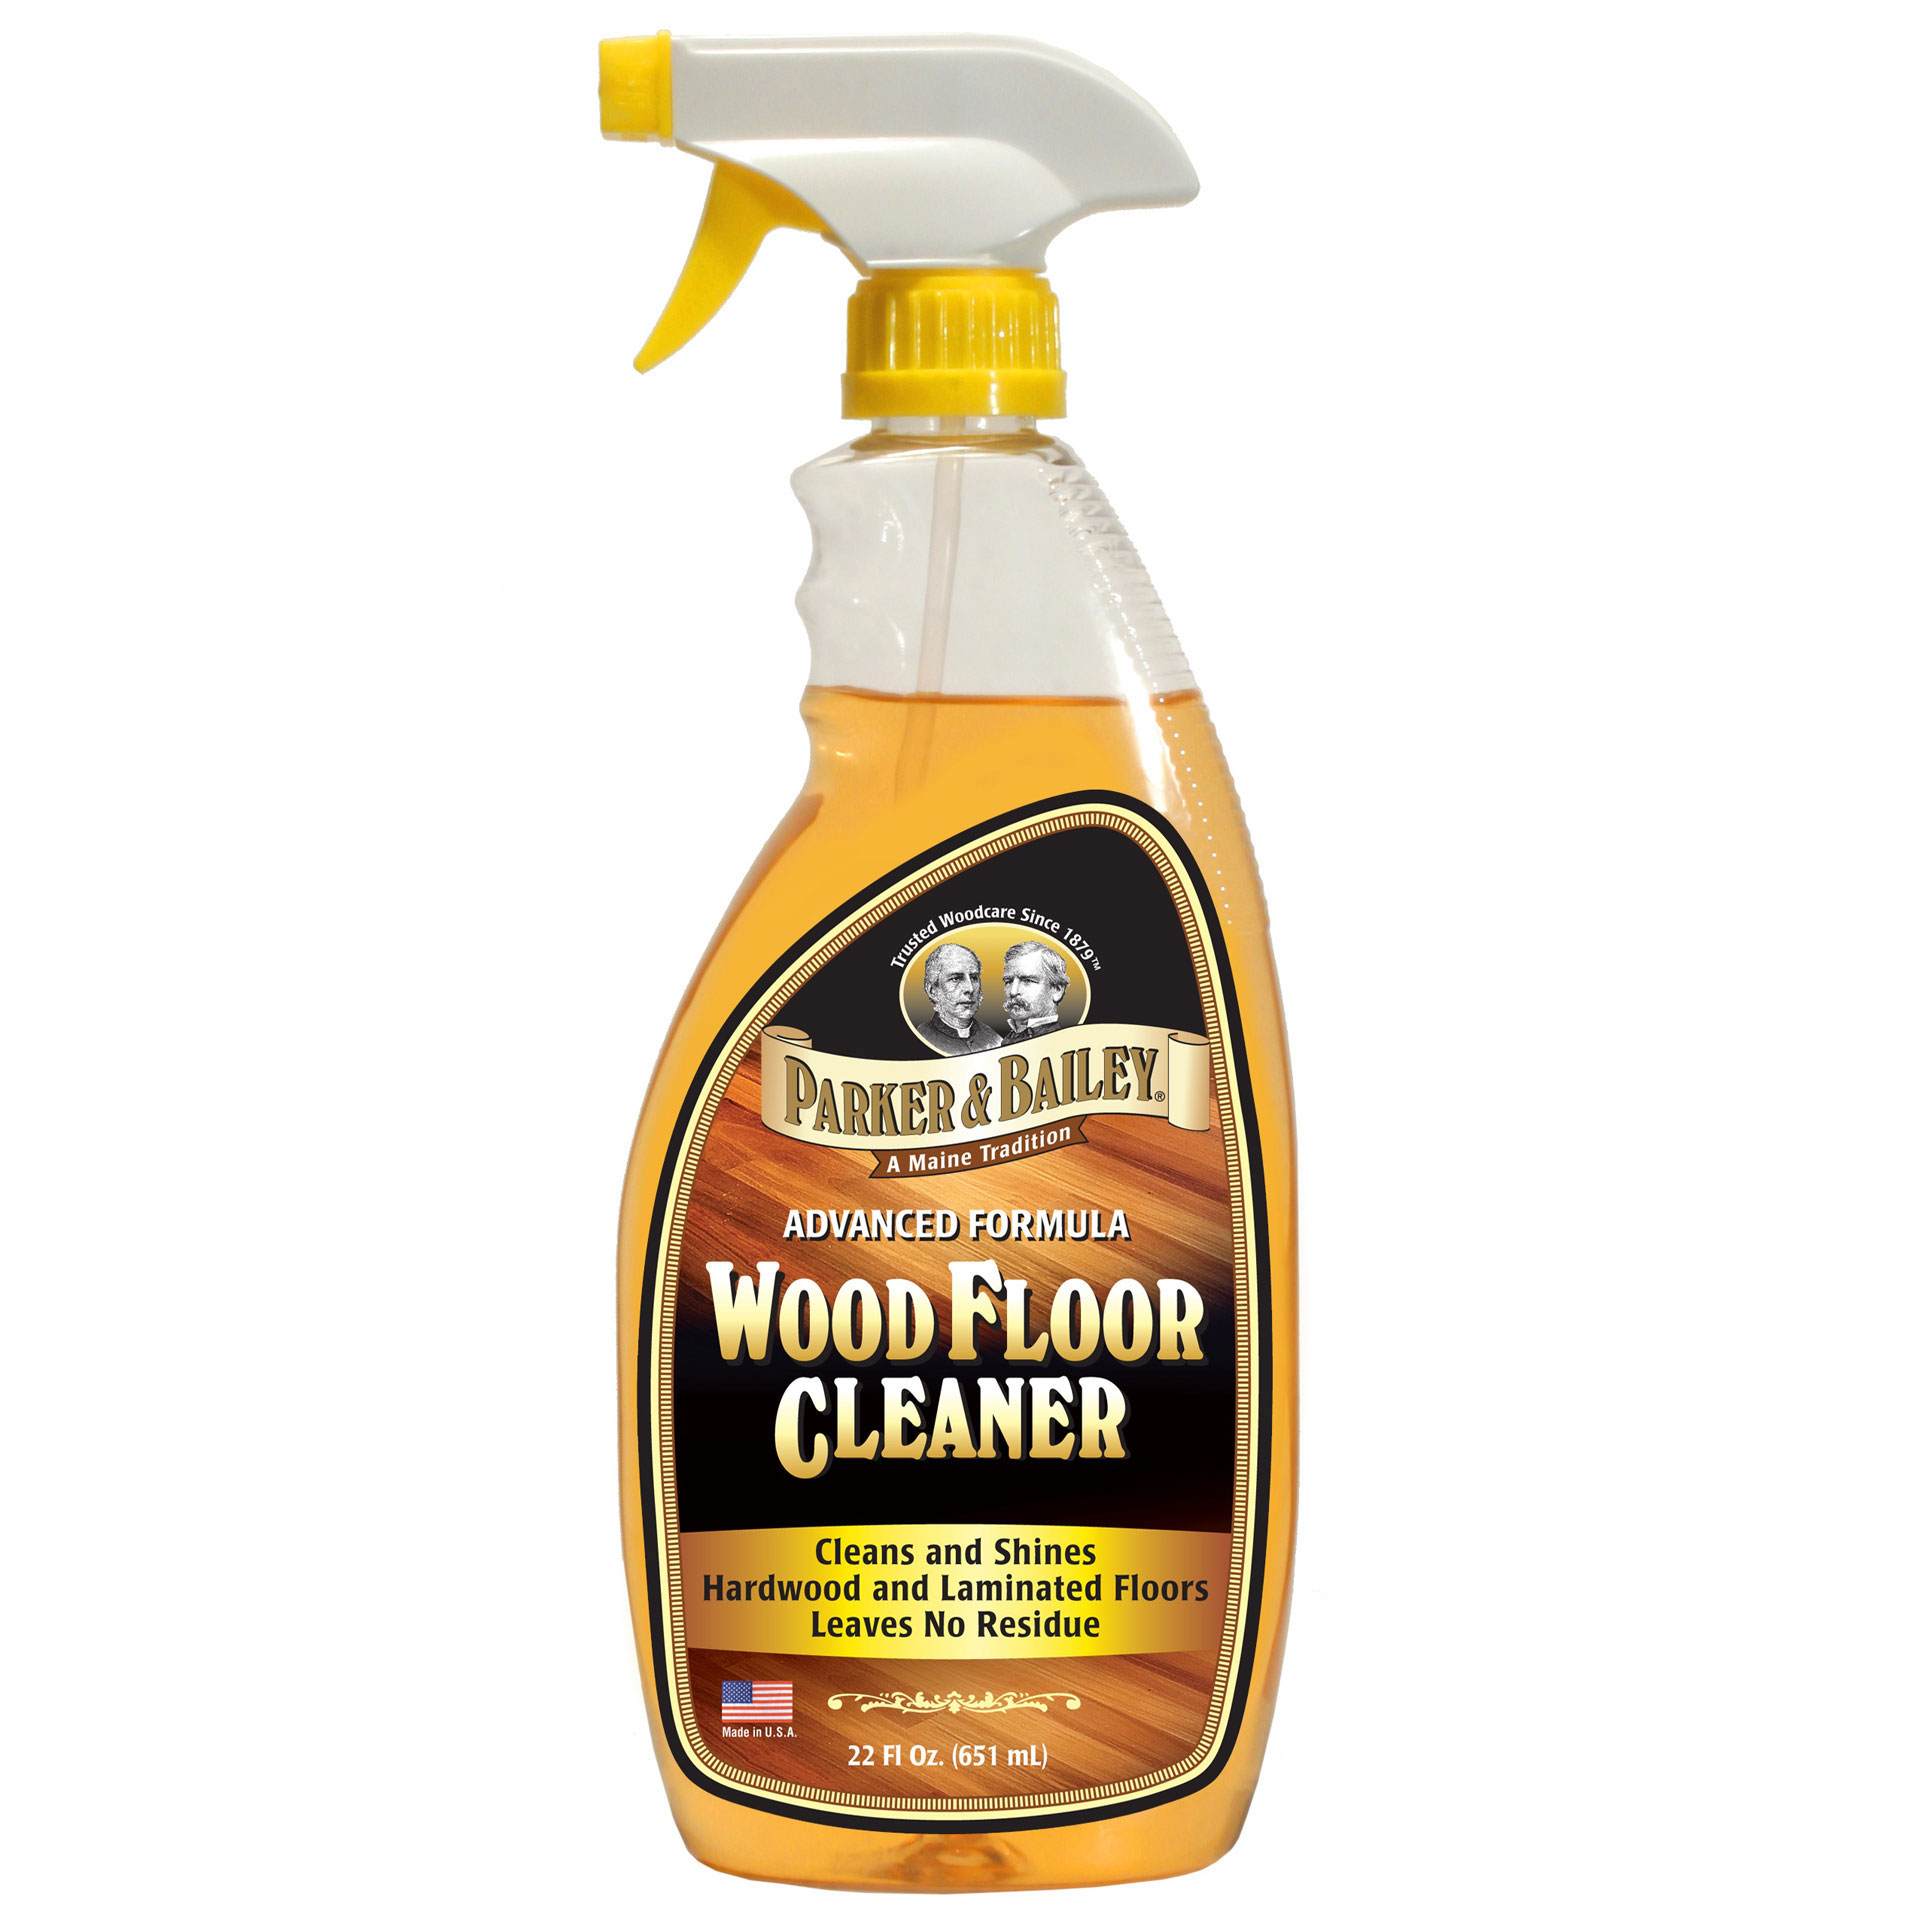 Parker bailey wood floor cleaner review for Hardwood floor cleaner